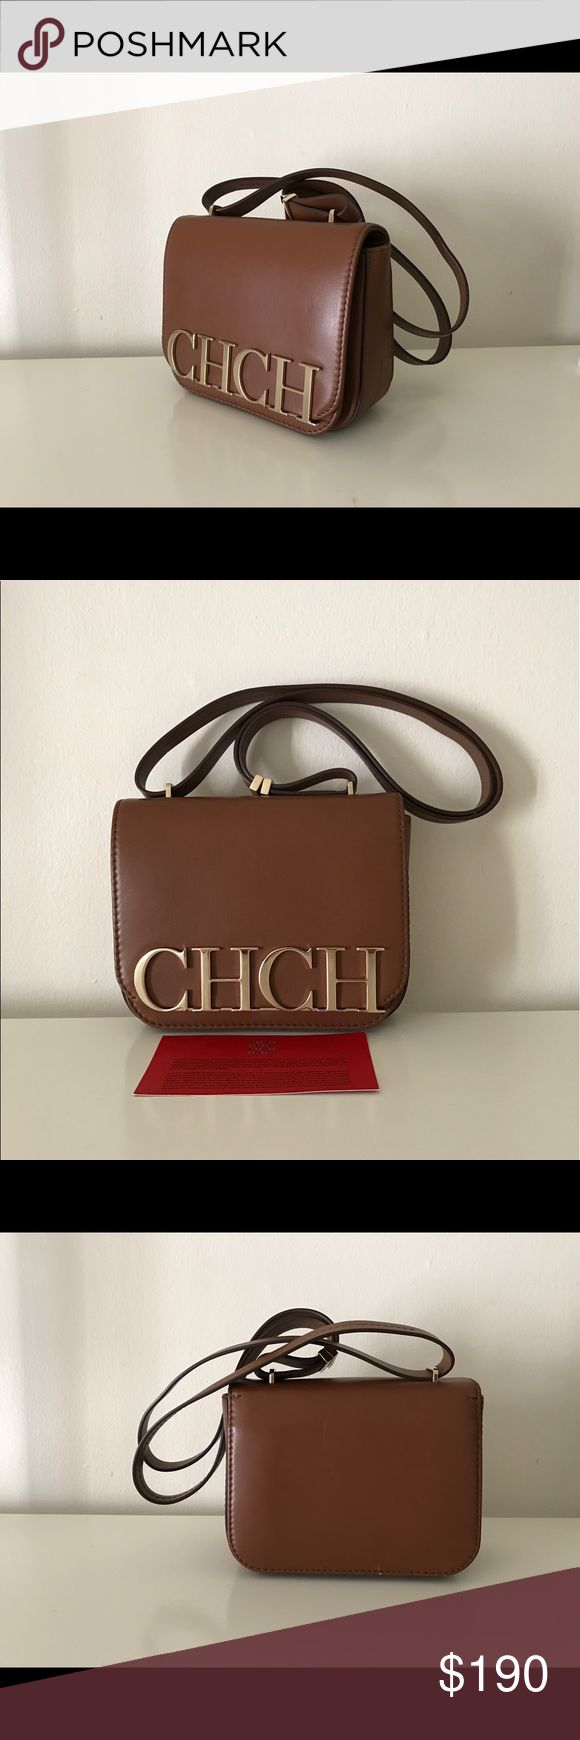 Carolina Herrera shoulder bag purse Authentic preloved in good condition but have some faint scratches in front and back look on pics. But inside new condition. Overall good Carolina Herrera Bags Shoulder Bags